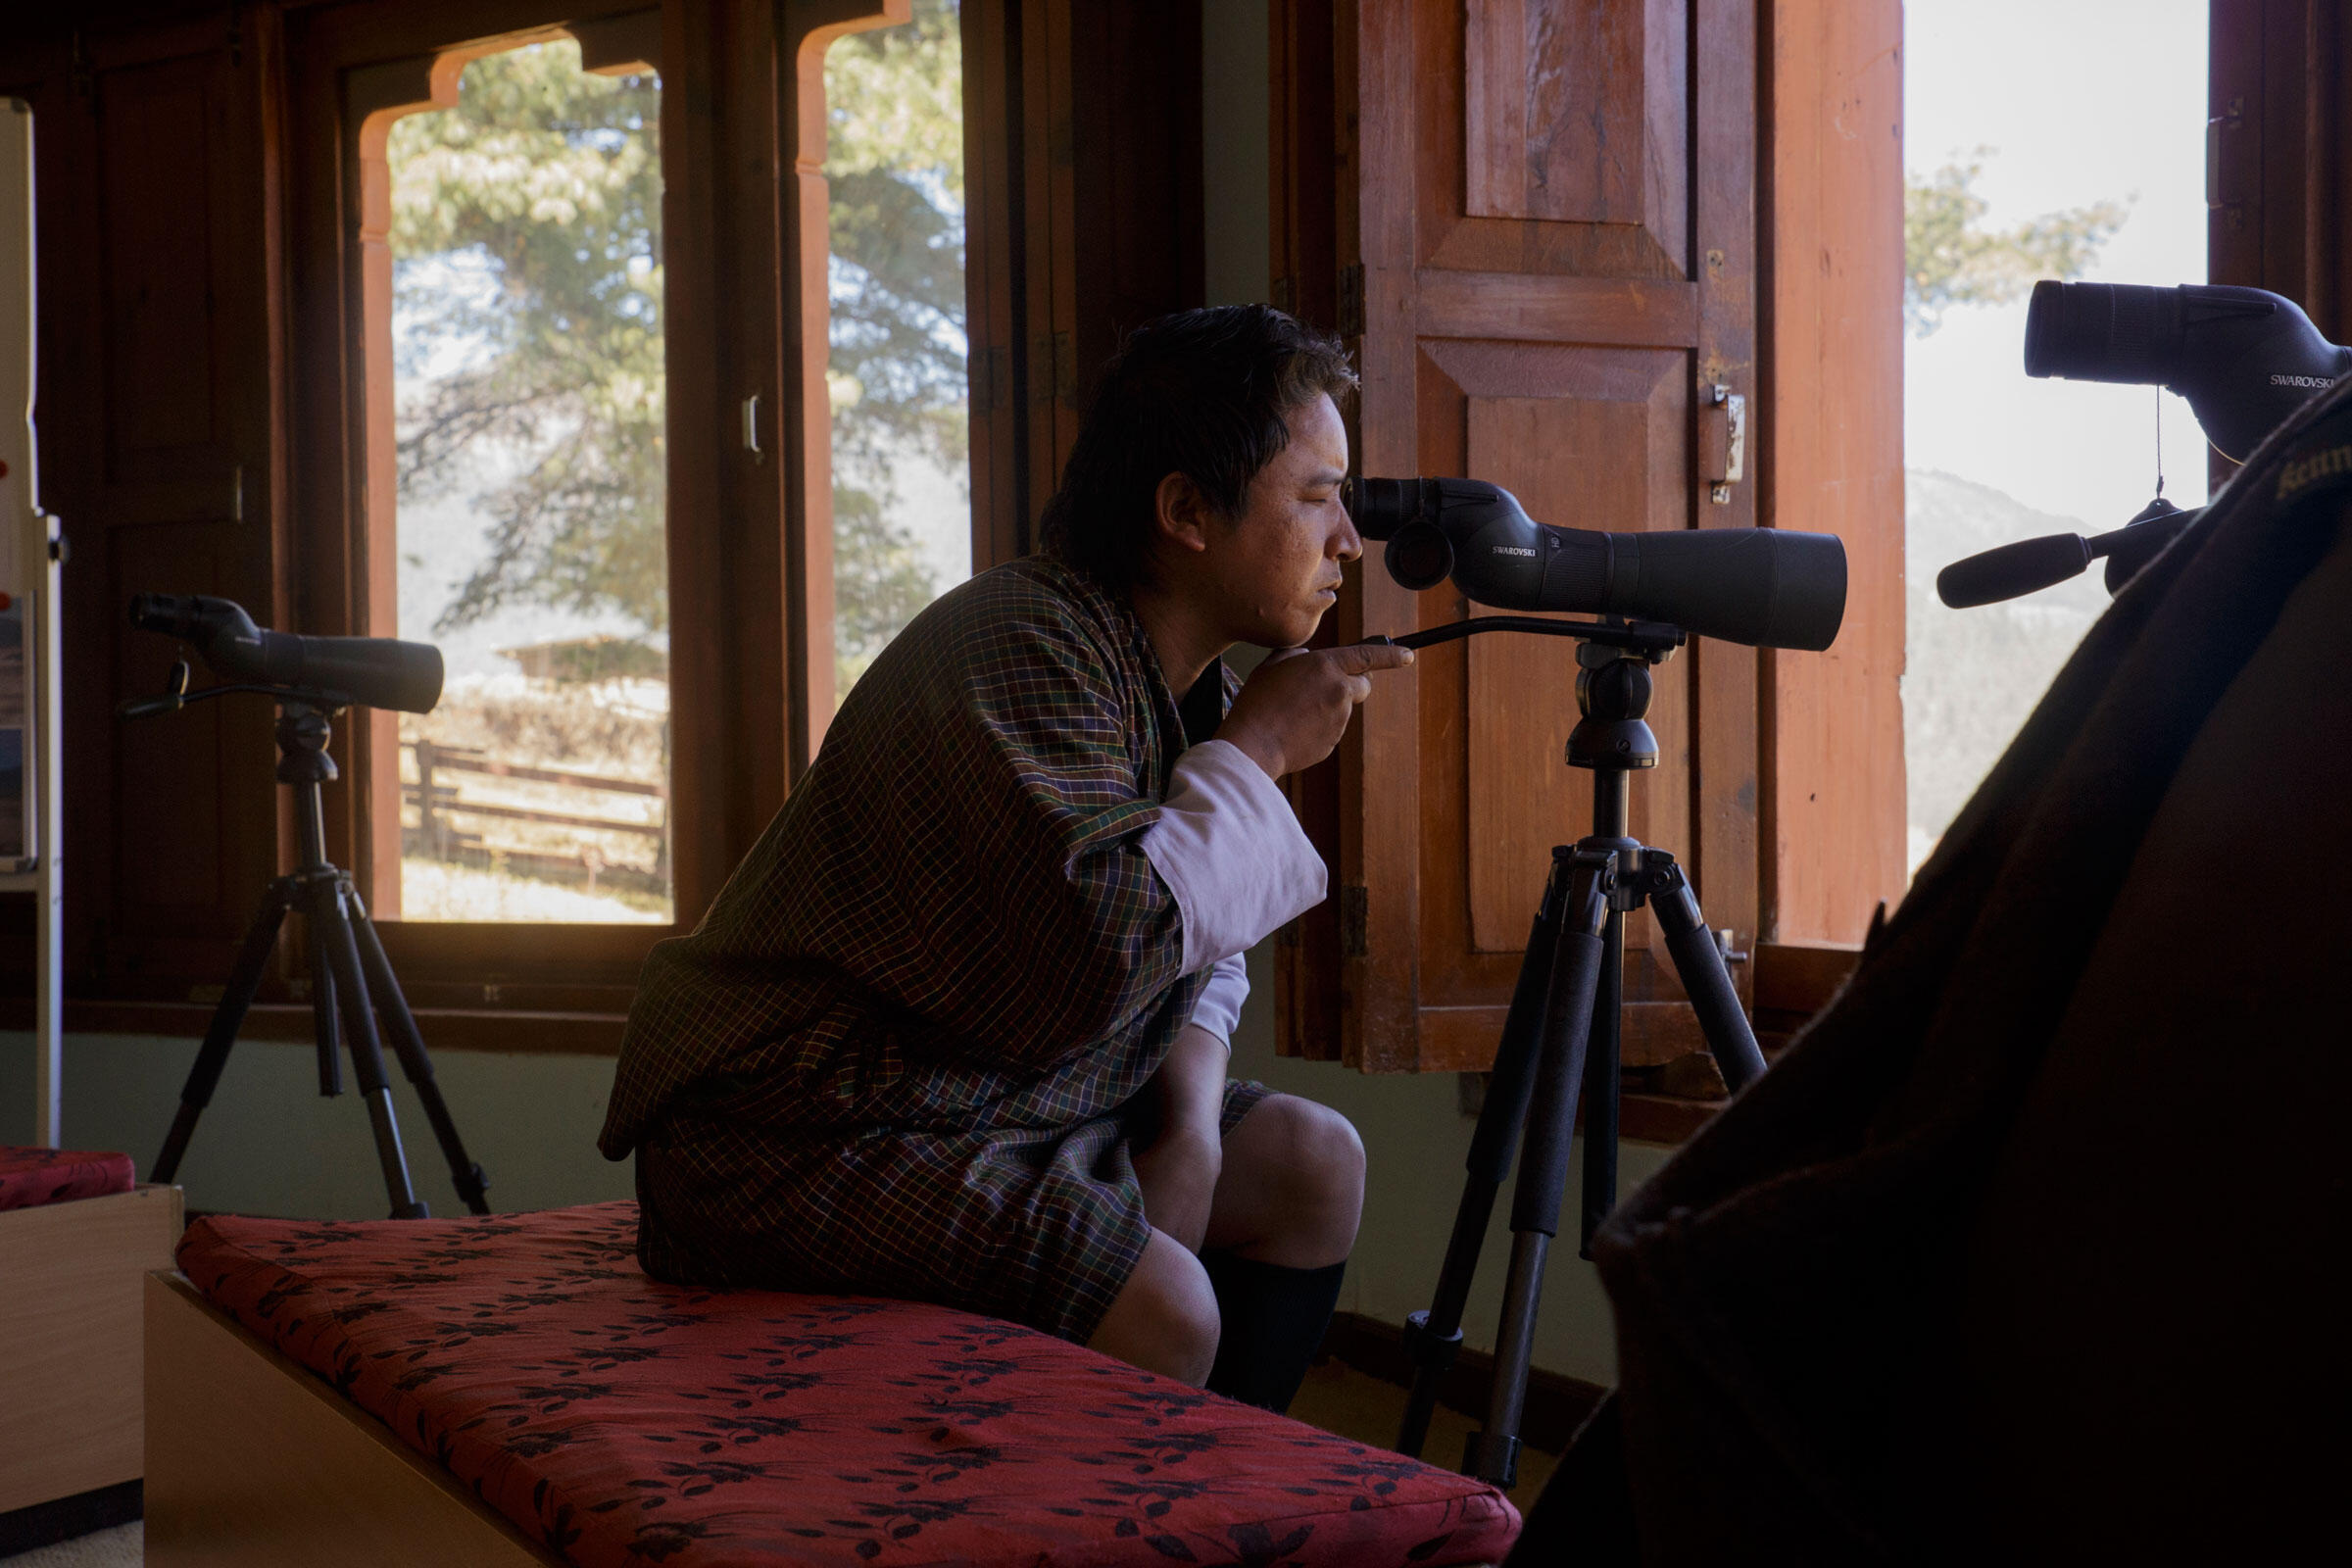 A local uses the observation room at the RSPN information center. Ambika Singh